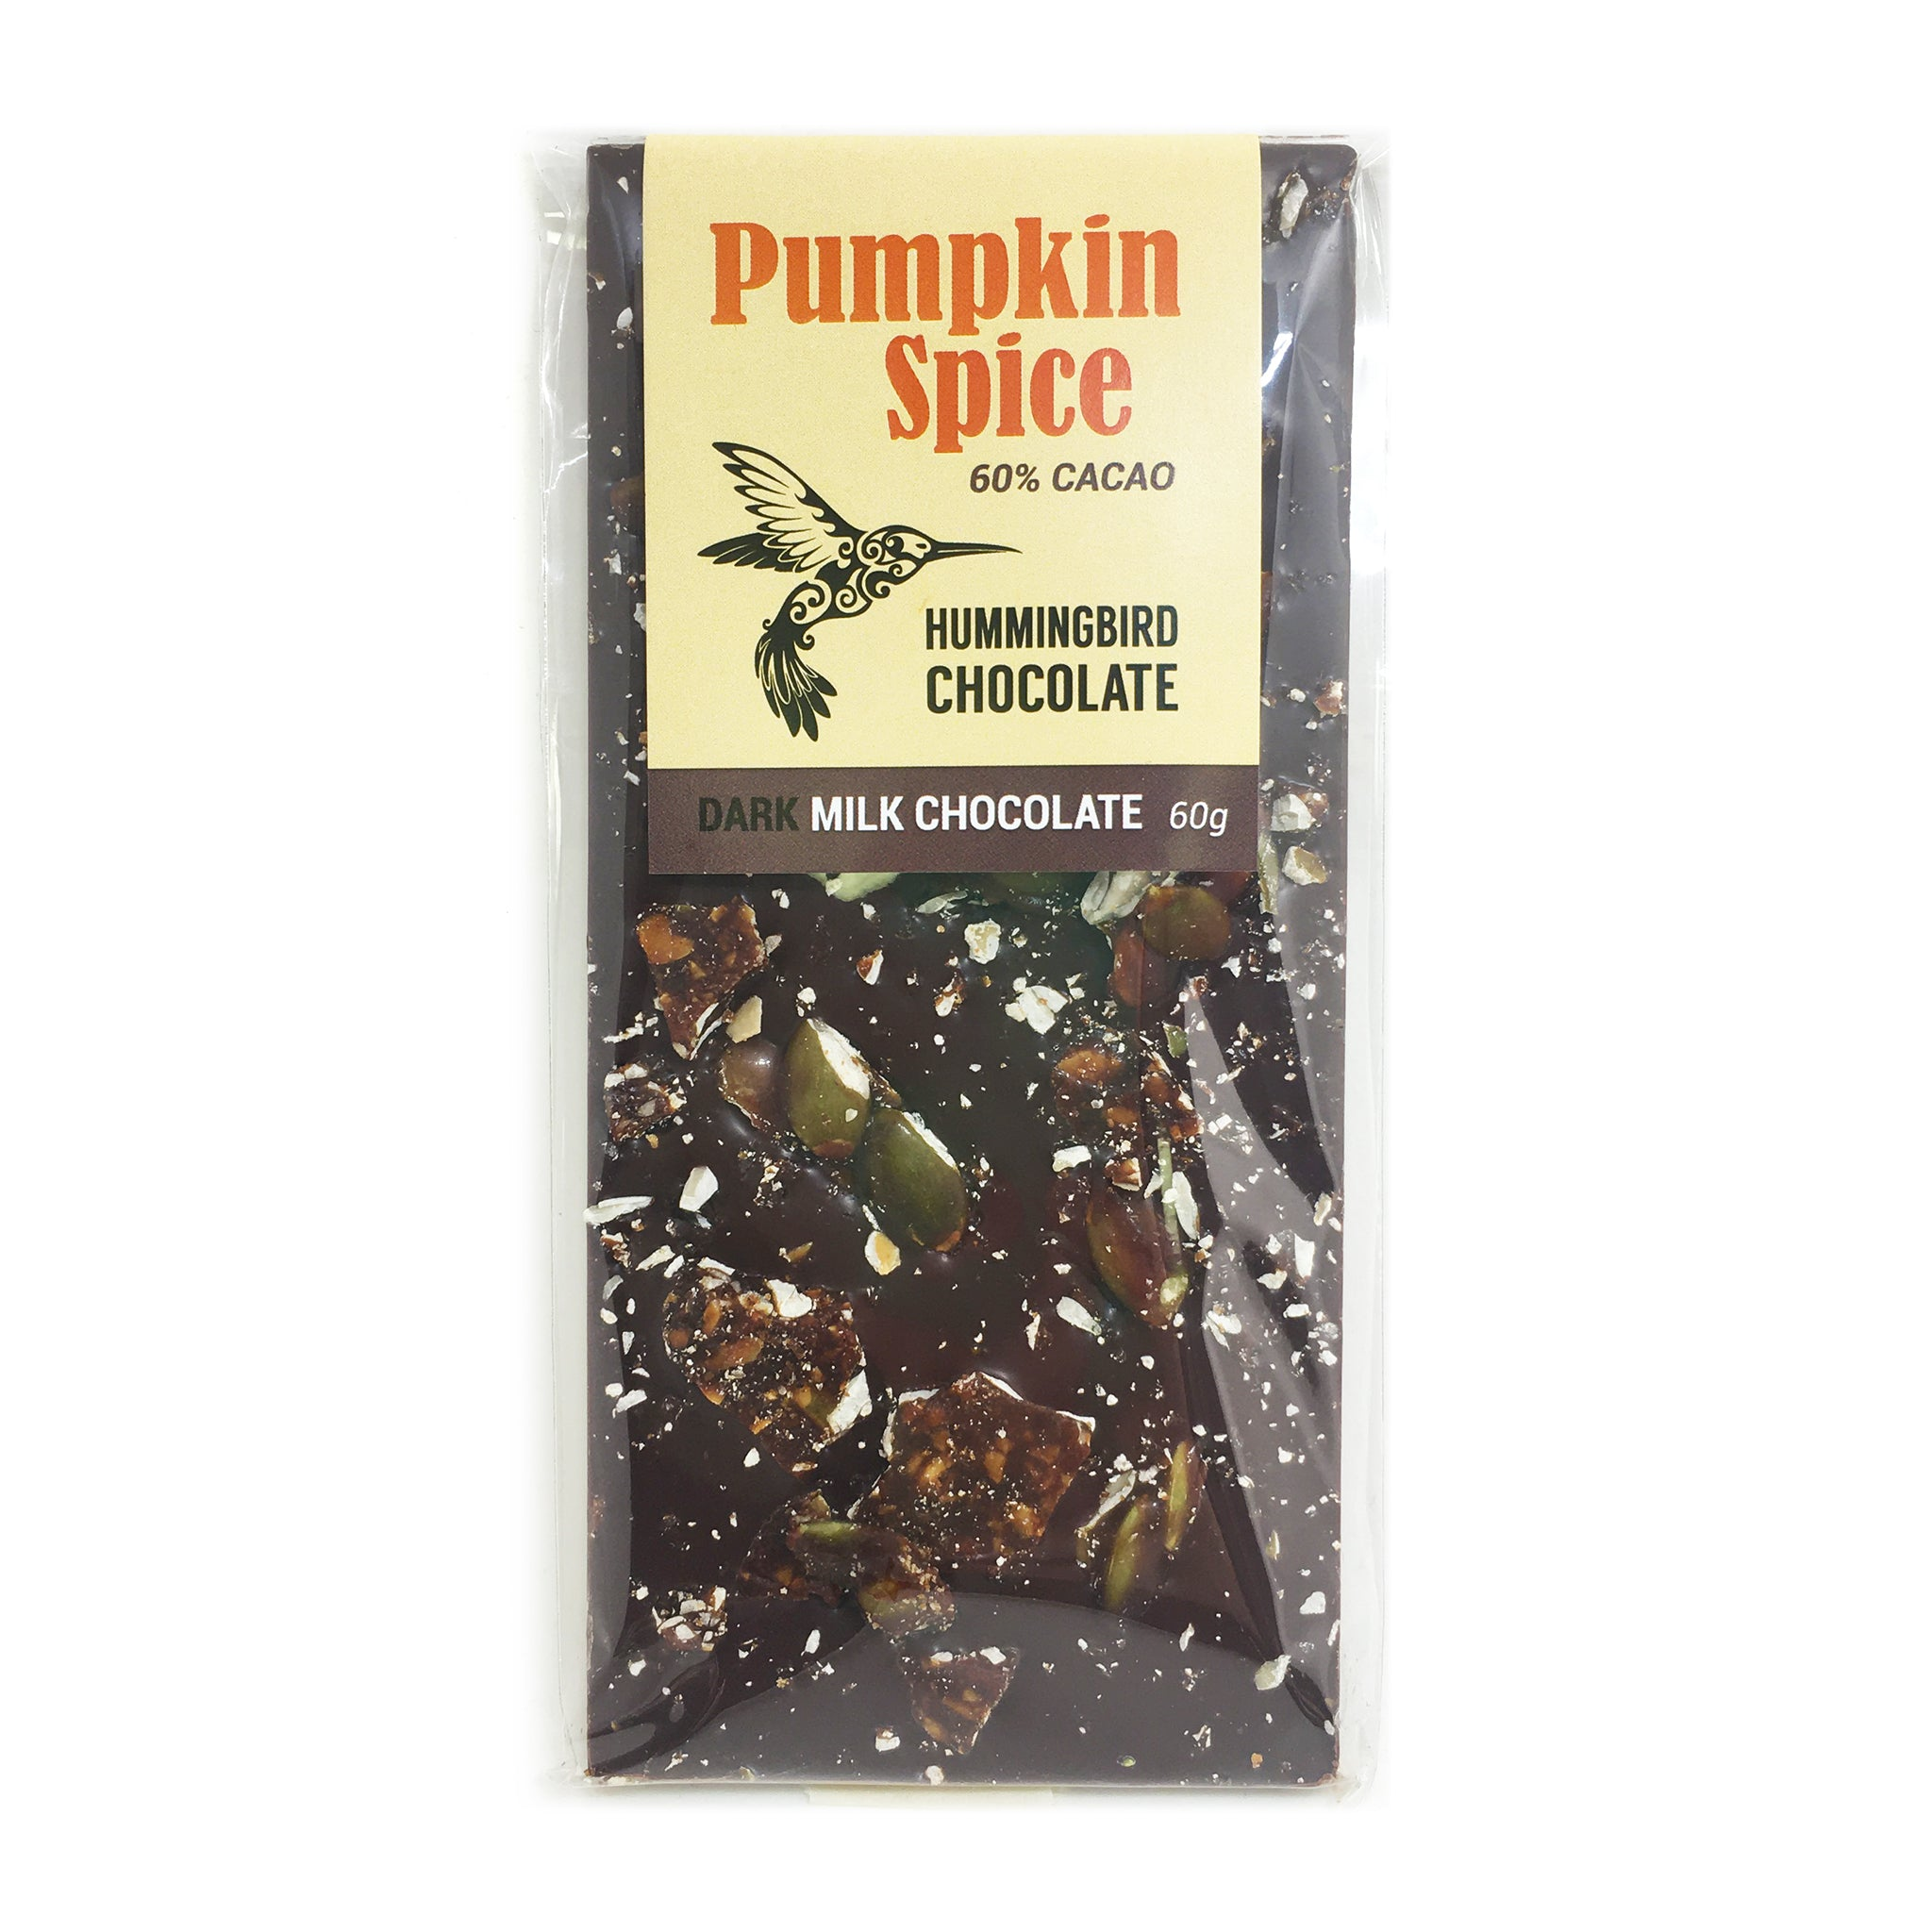 Hummingbird Chocolate Maker, Pumpkin Spice, dark-milk chocolate bar, 60g, 60% cacao